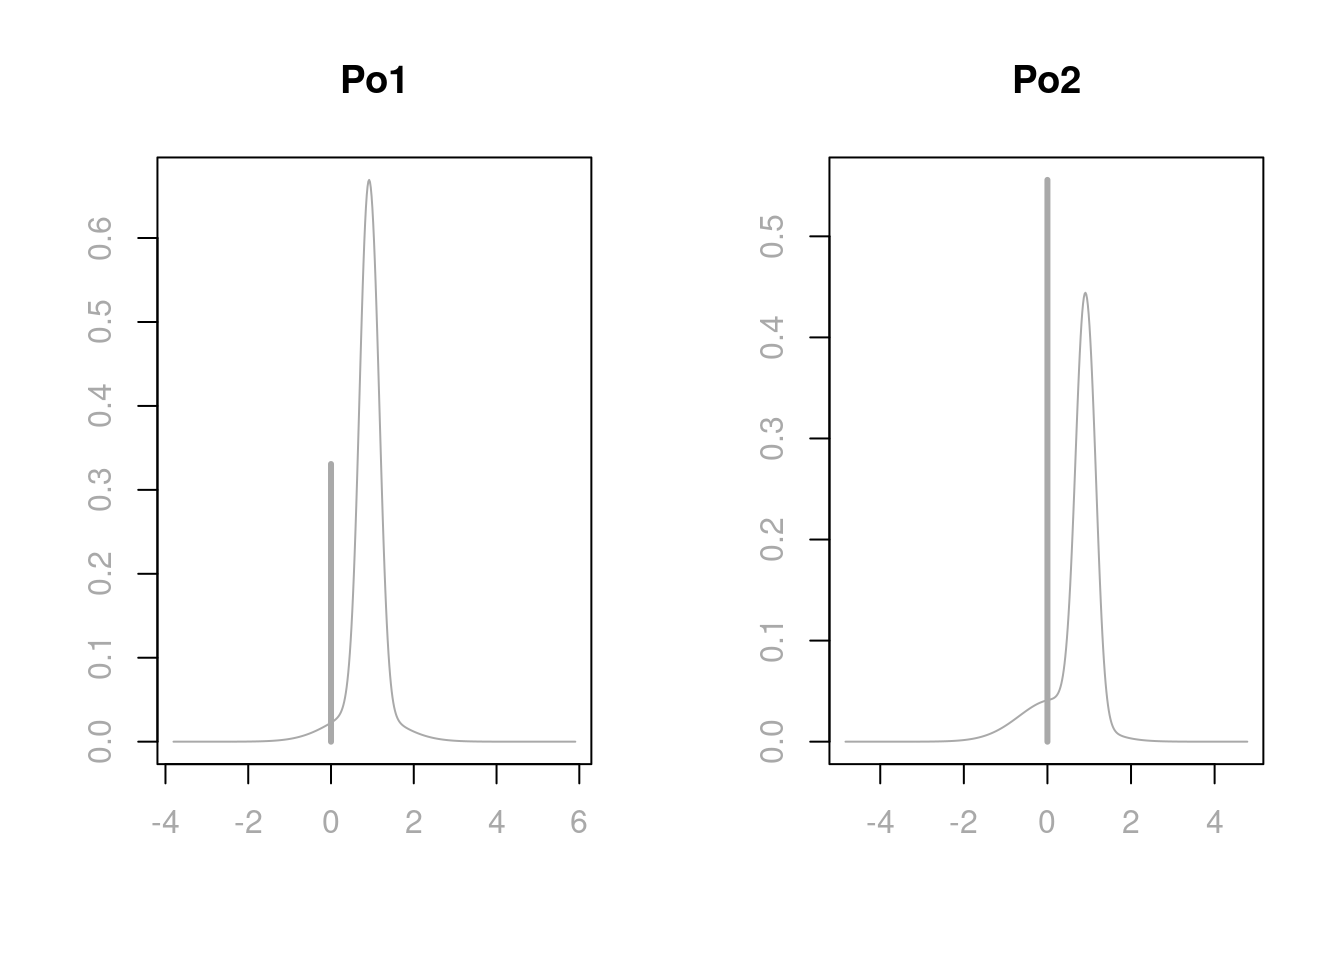 Chapter 8 Stochastic Explorations Using MCMC | An